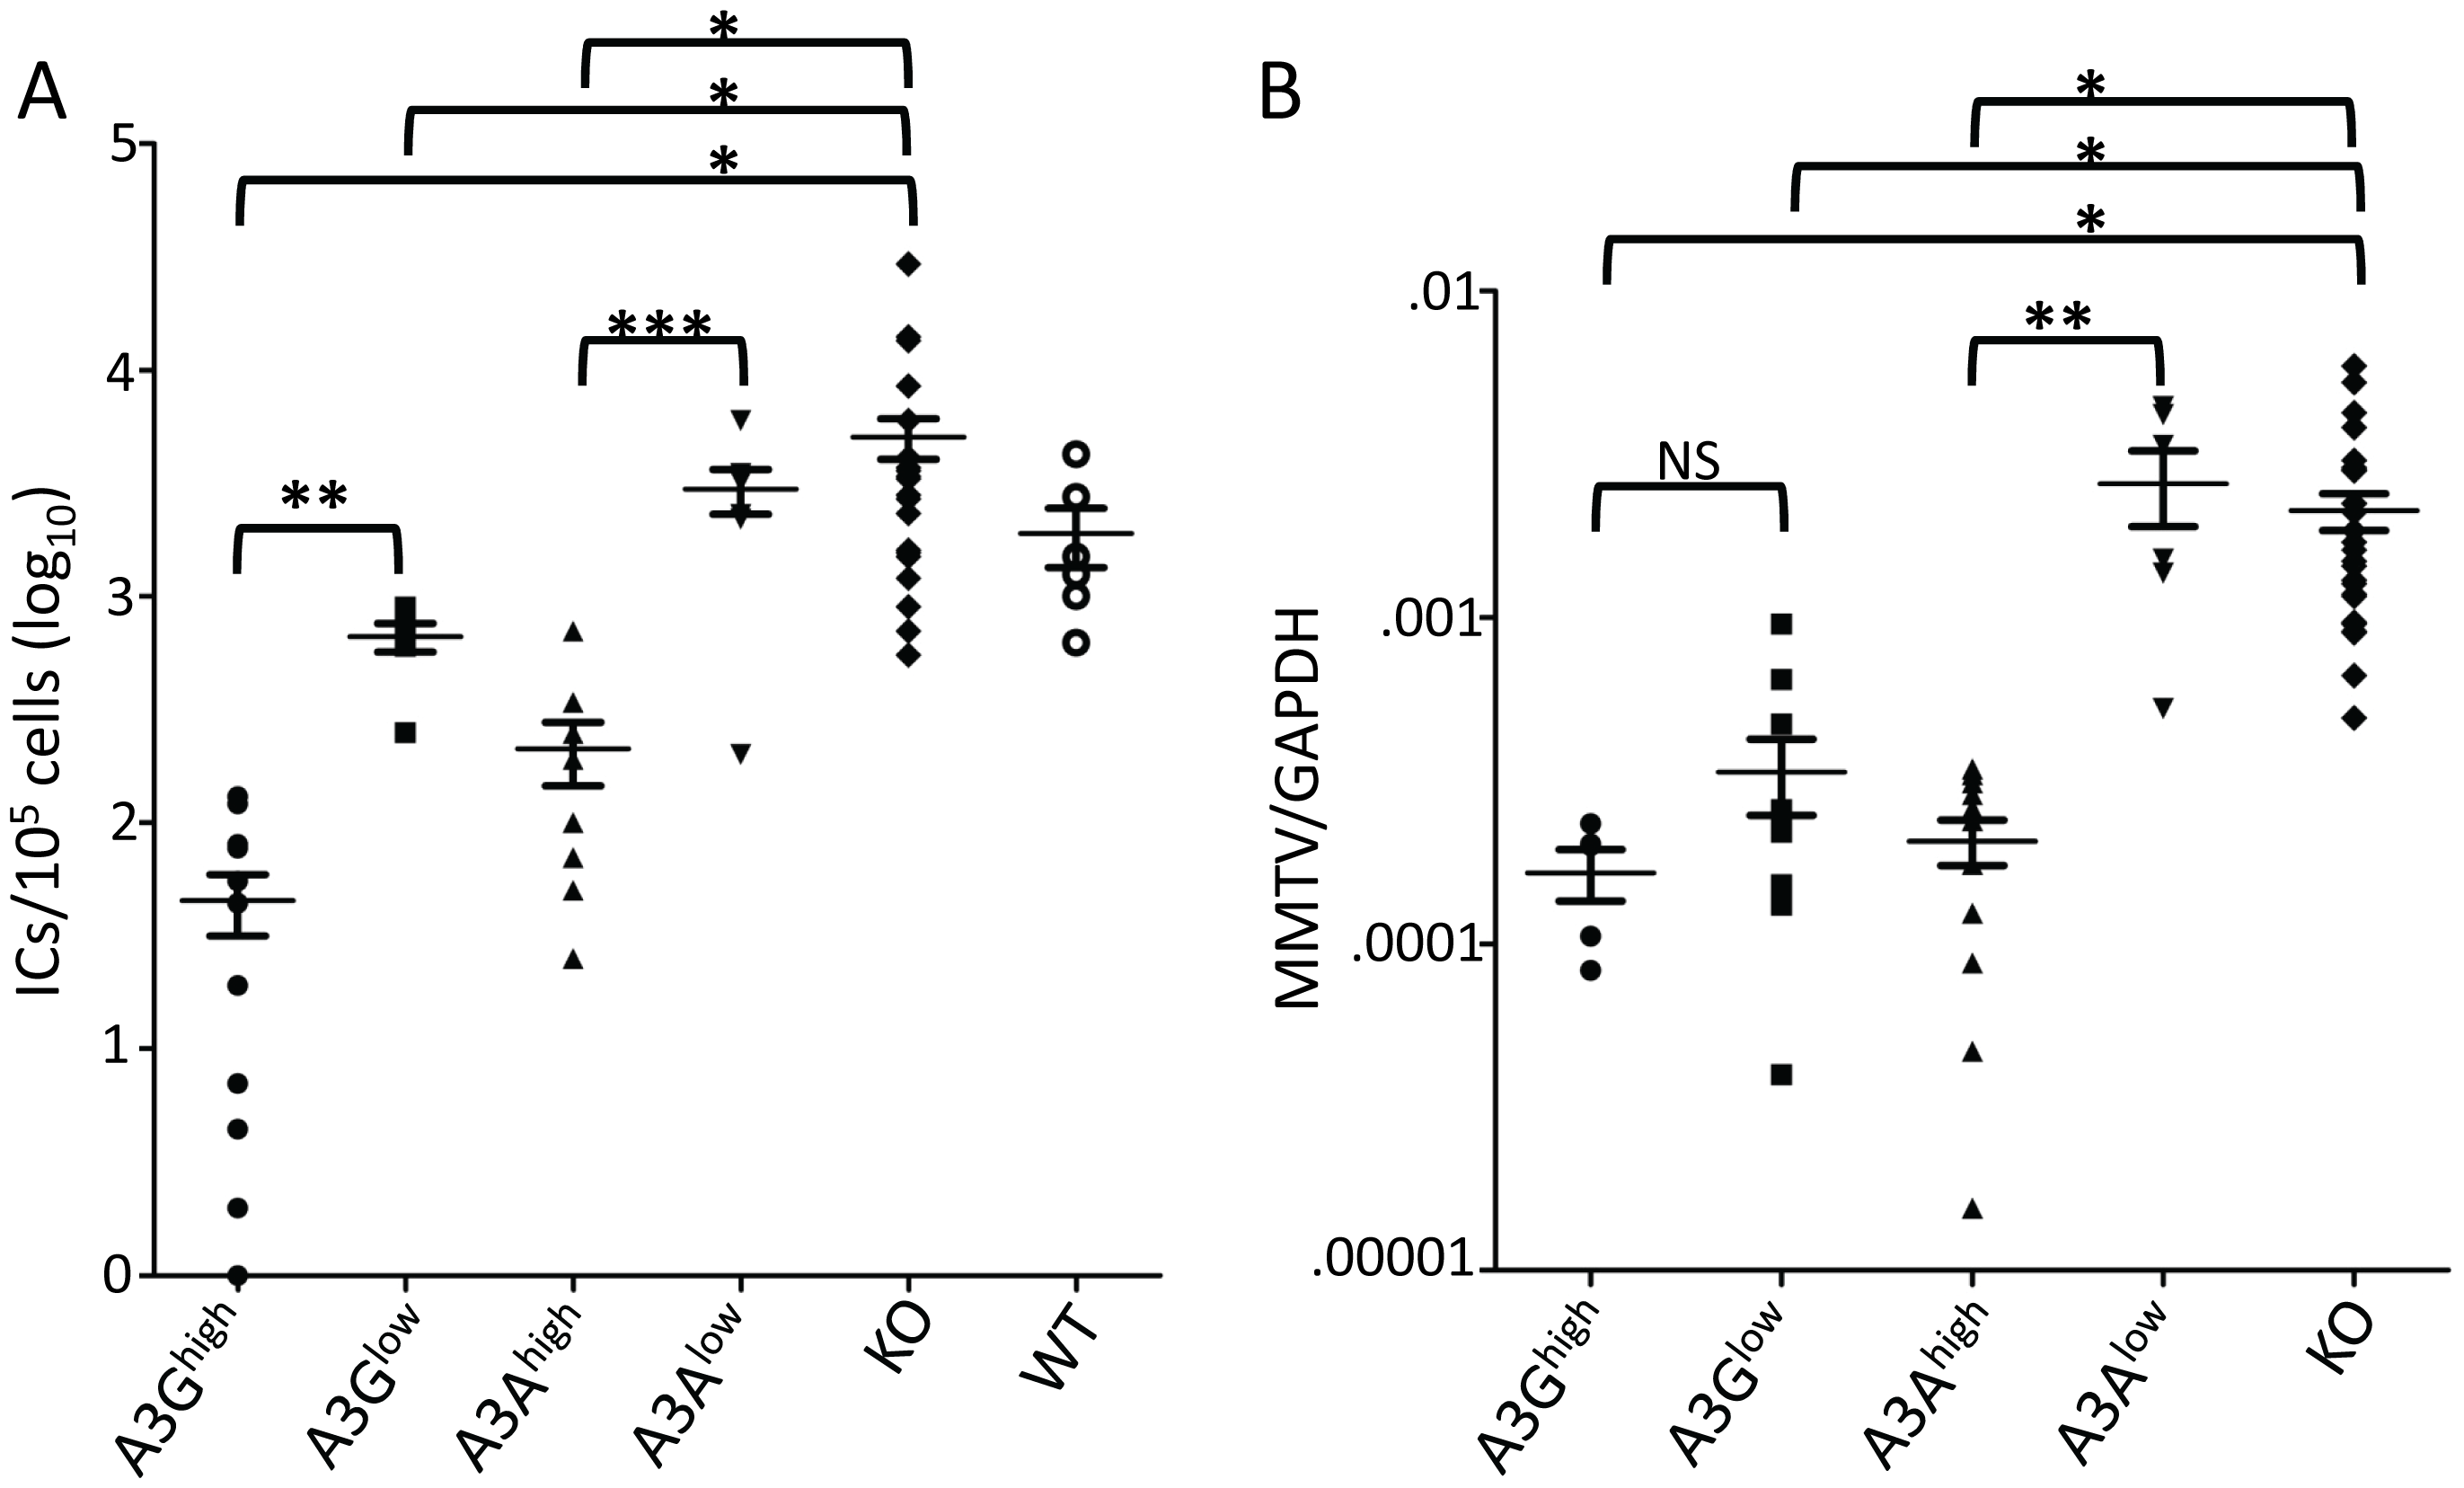 A3A and A3G restrict murine retrovirus infection <i>in vivo</i>.